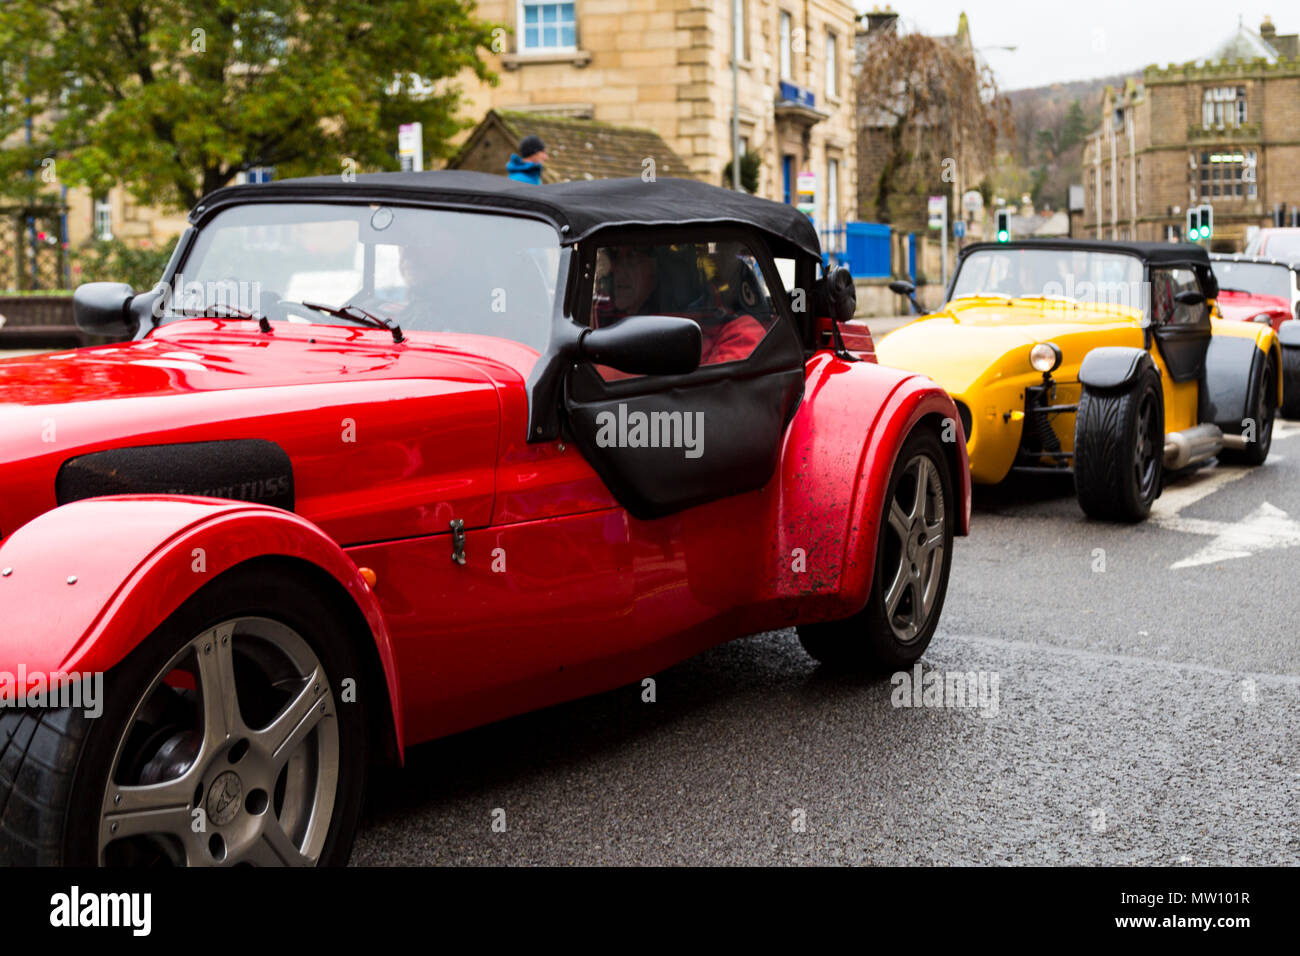 A group of Westfield Sport Cars seen in a line in the Derbyshire town of Bakewell - Stock Image